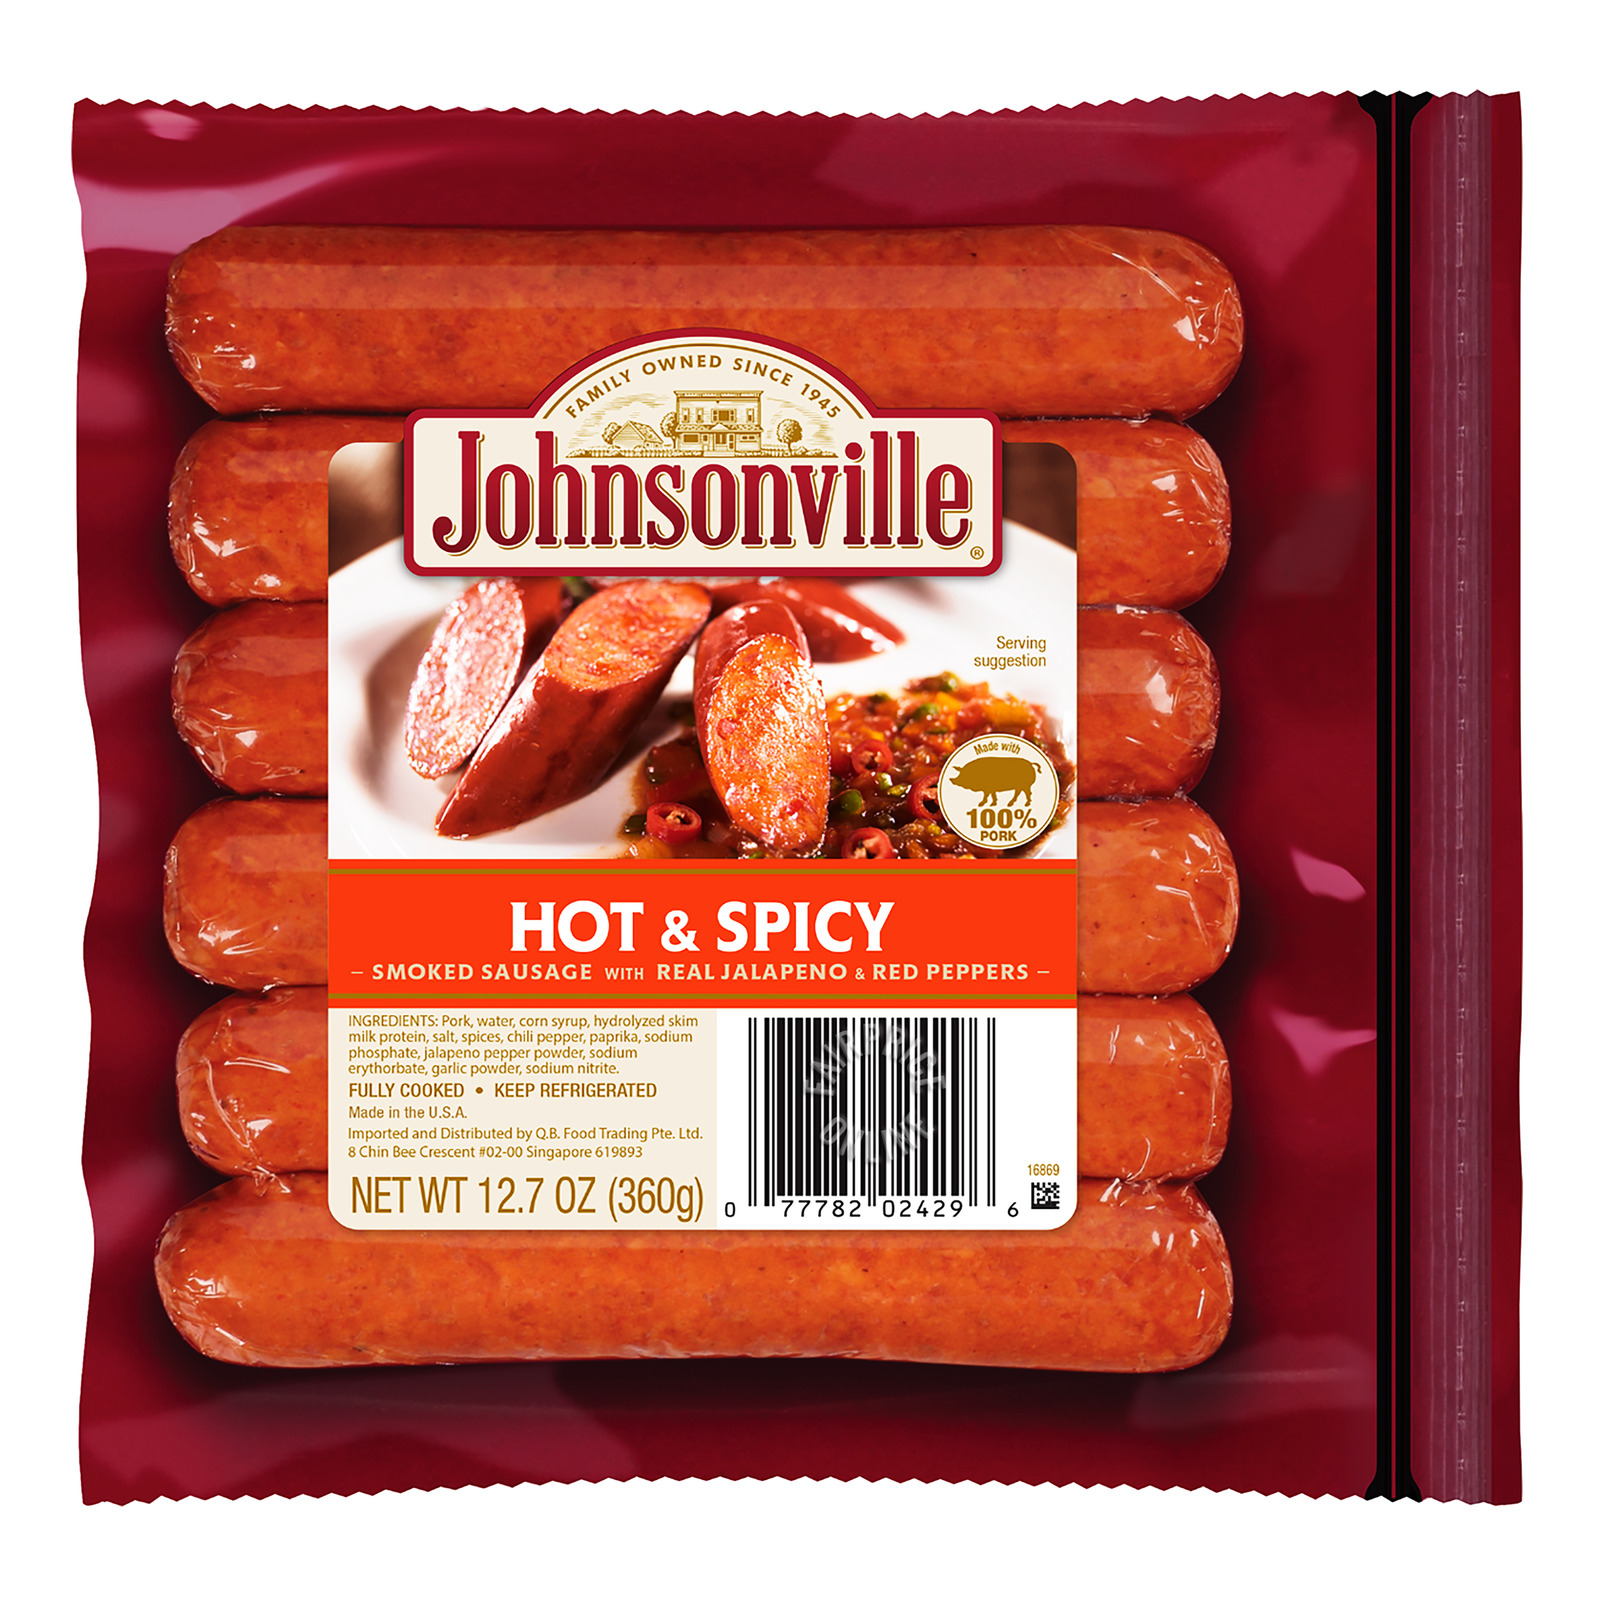 Johnsonville Smoked Pork Sausage - Hot & Spicy